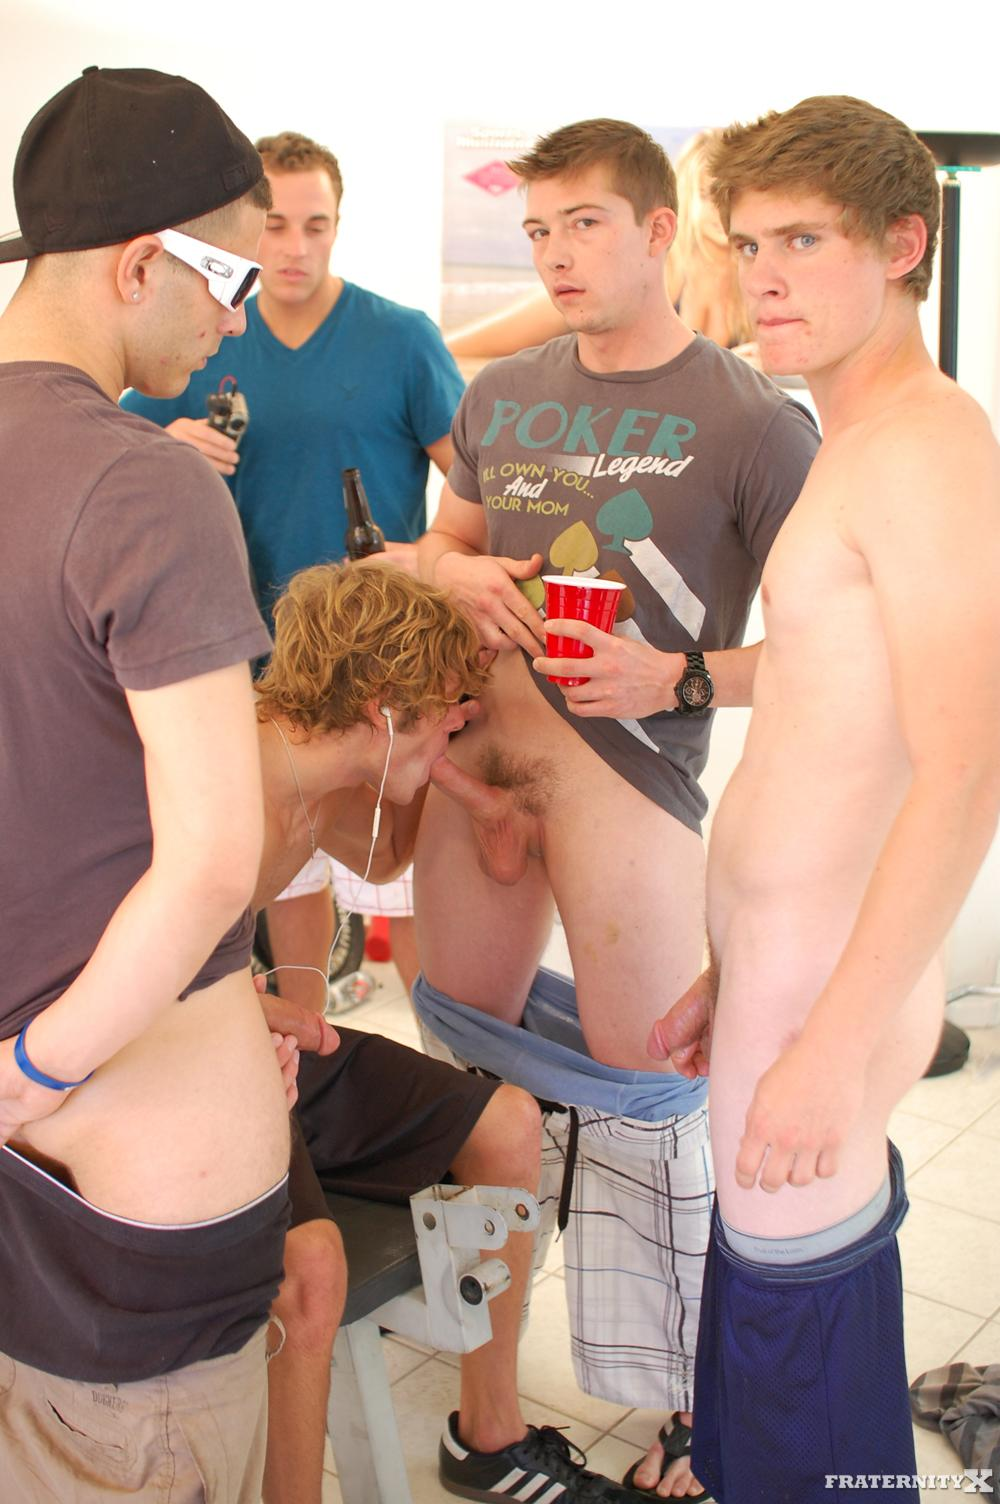 Fraternity X Cum Dump Frat Guys Fucking Bareback Amateur Gay Porn 07 Real Fraternity Brothers Finger Bang and Bareback A Pledge